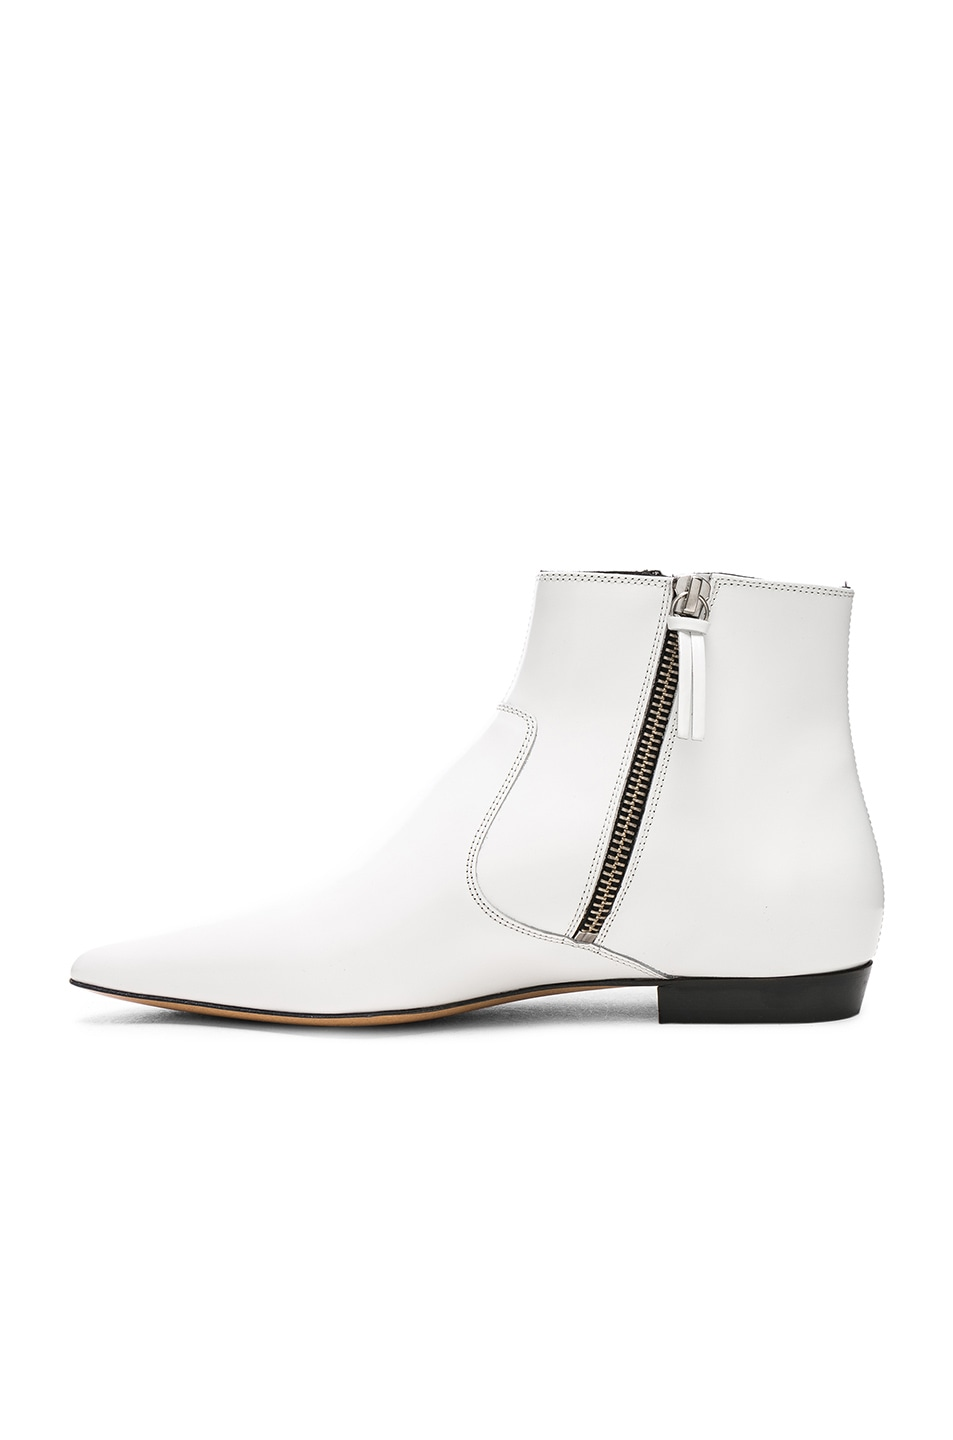 Isabel Marant White Dawie Boots H3fE5uvj